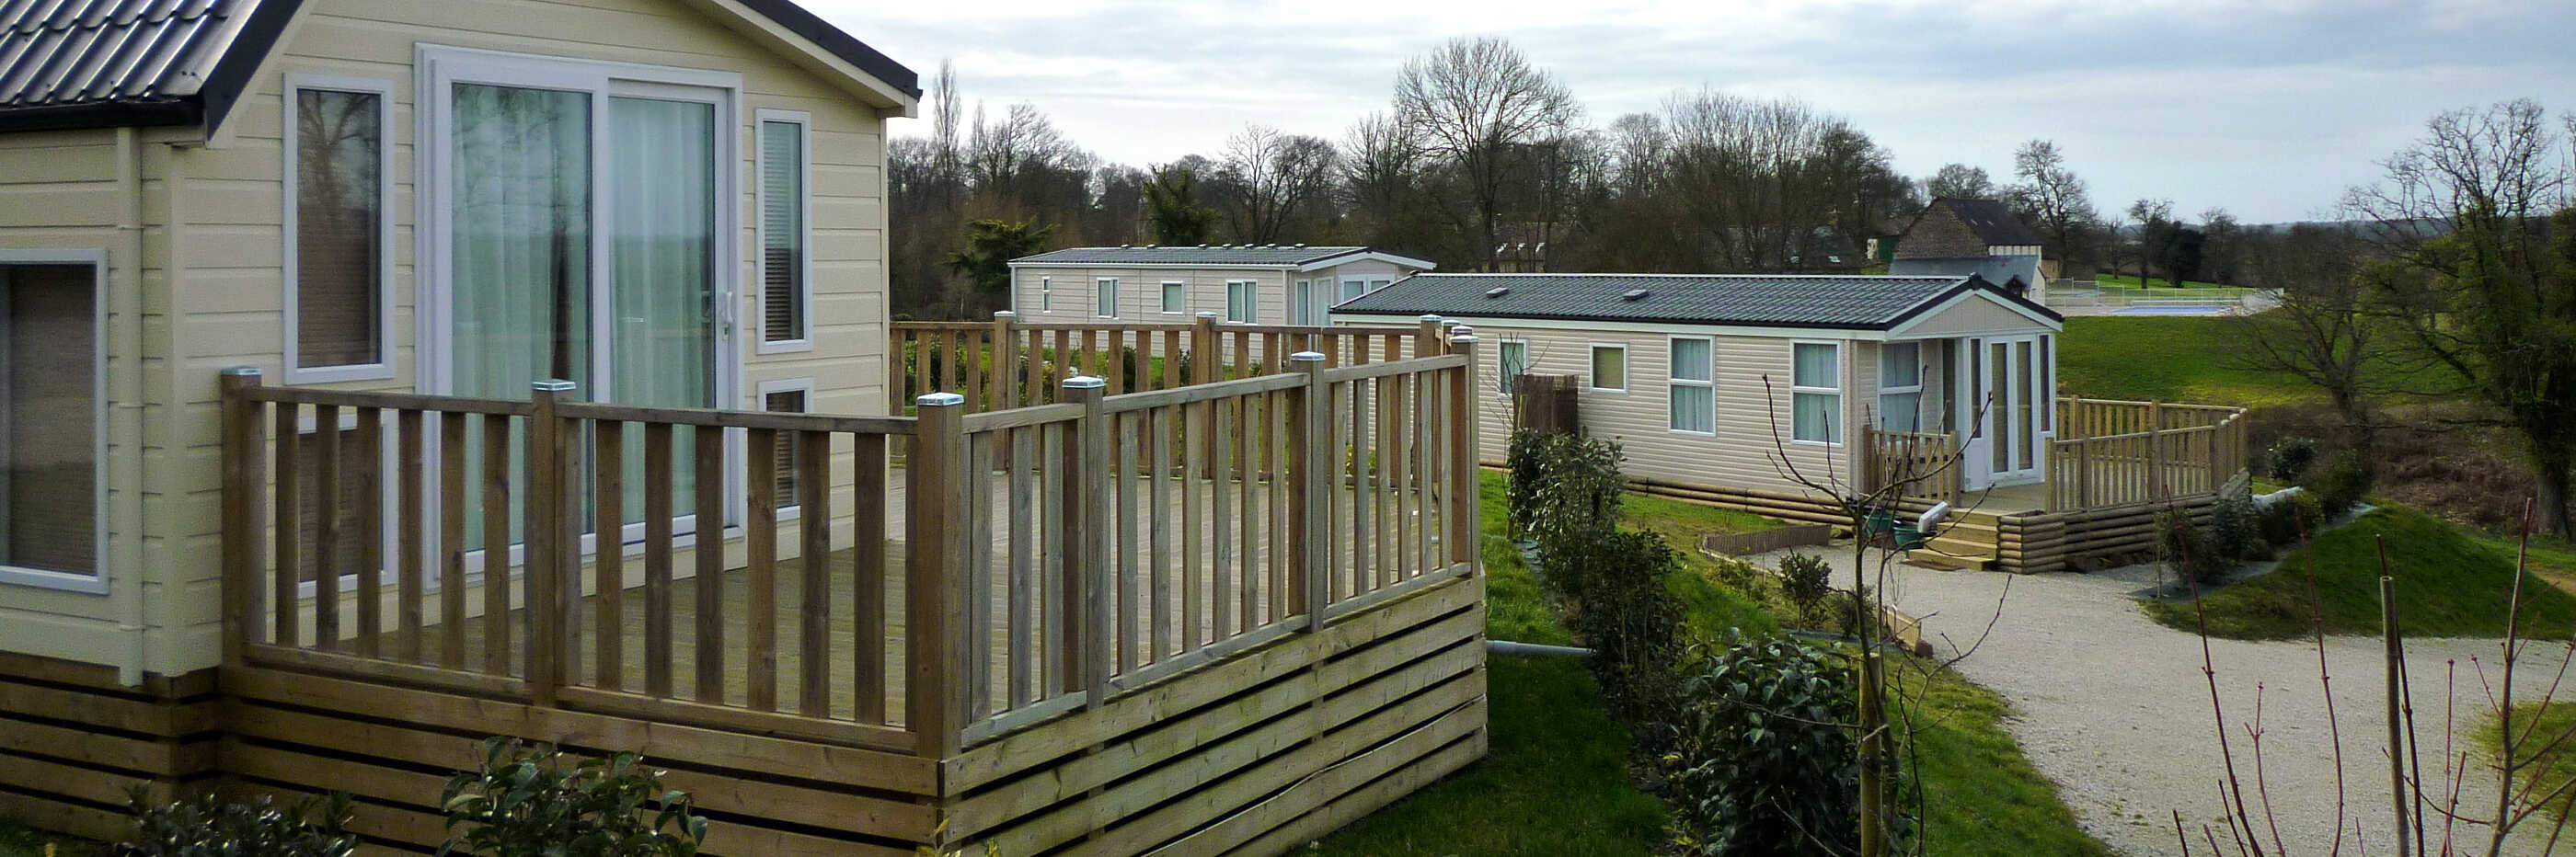 Photo of three park homes sited at Parc Mayenne.